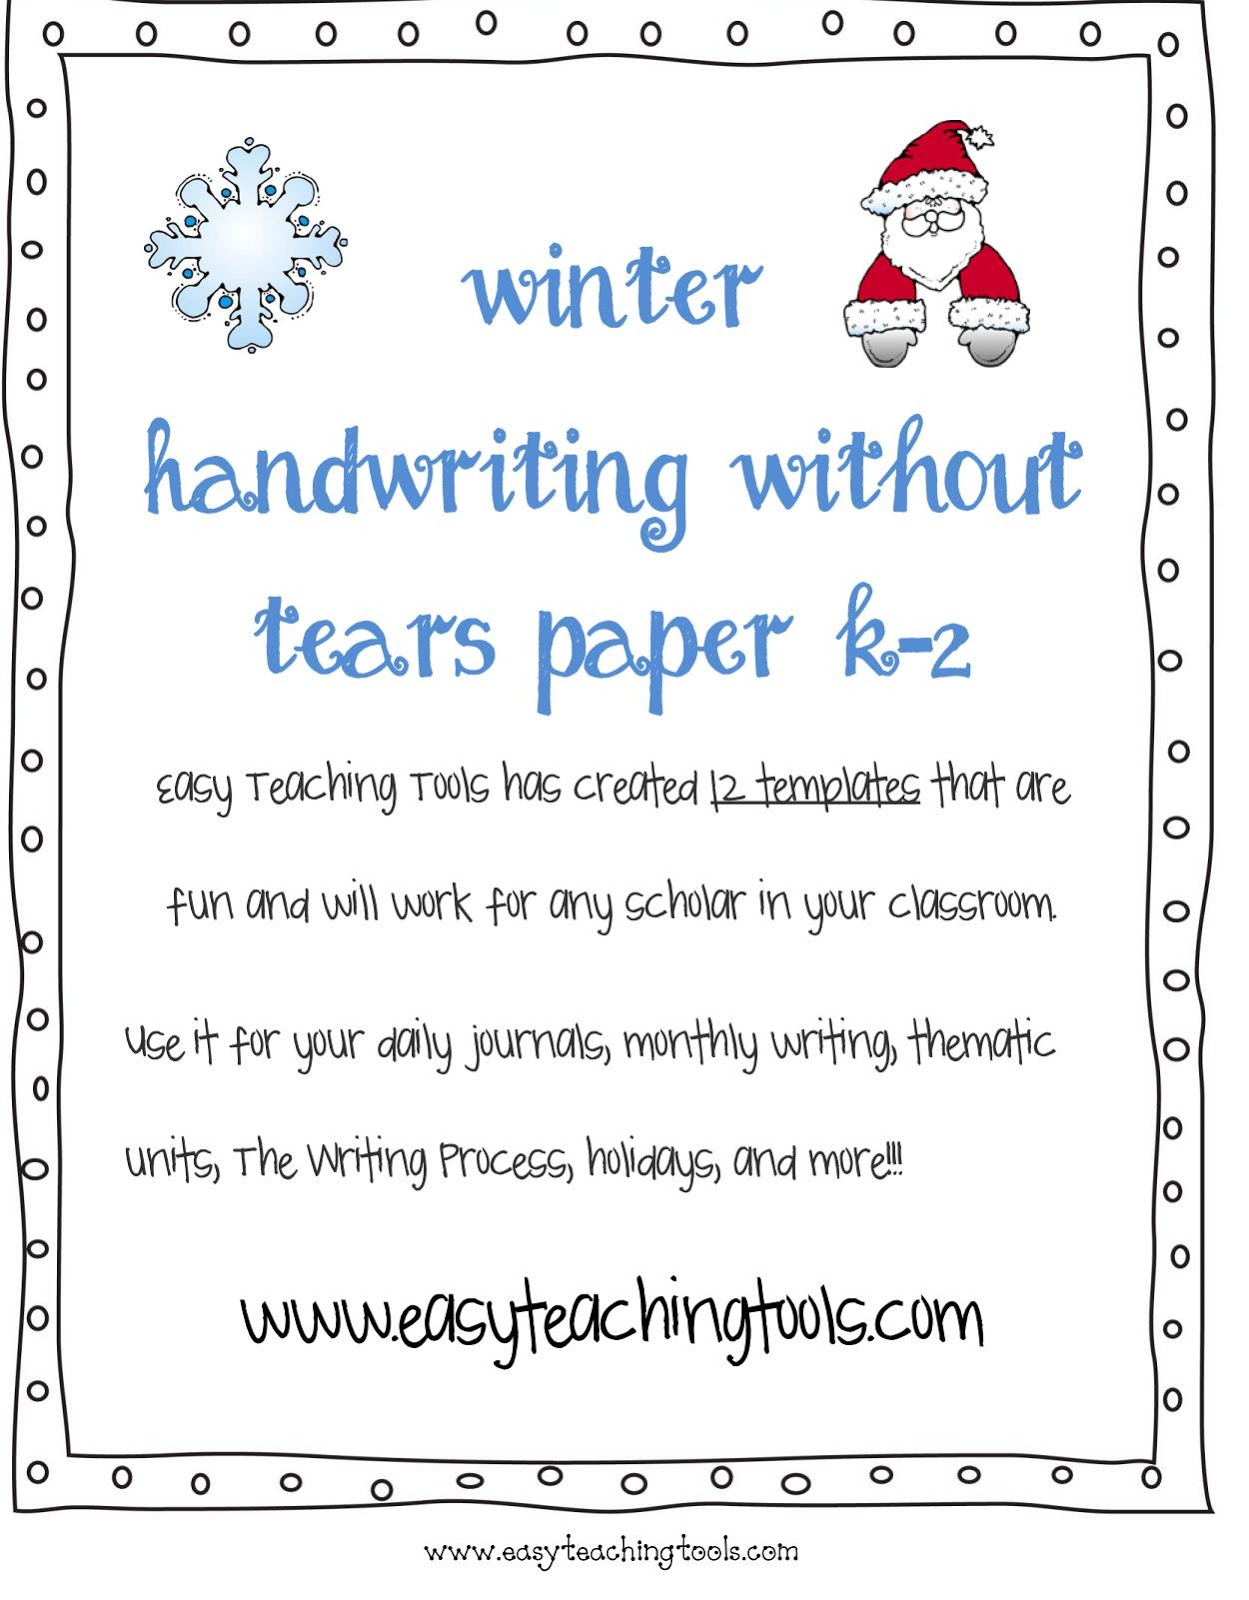 Handwriting without tears easy teaching tools for Handwriting without tears letter templates